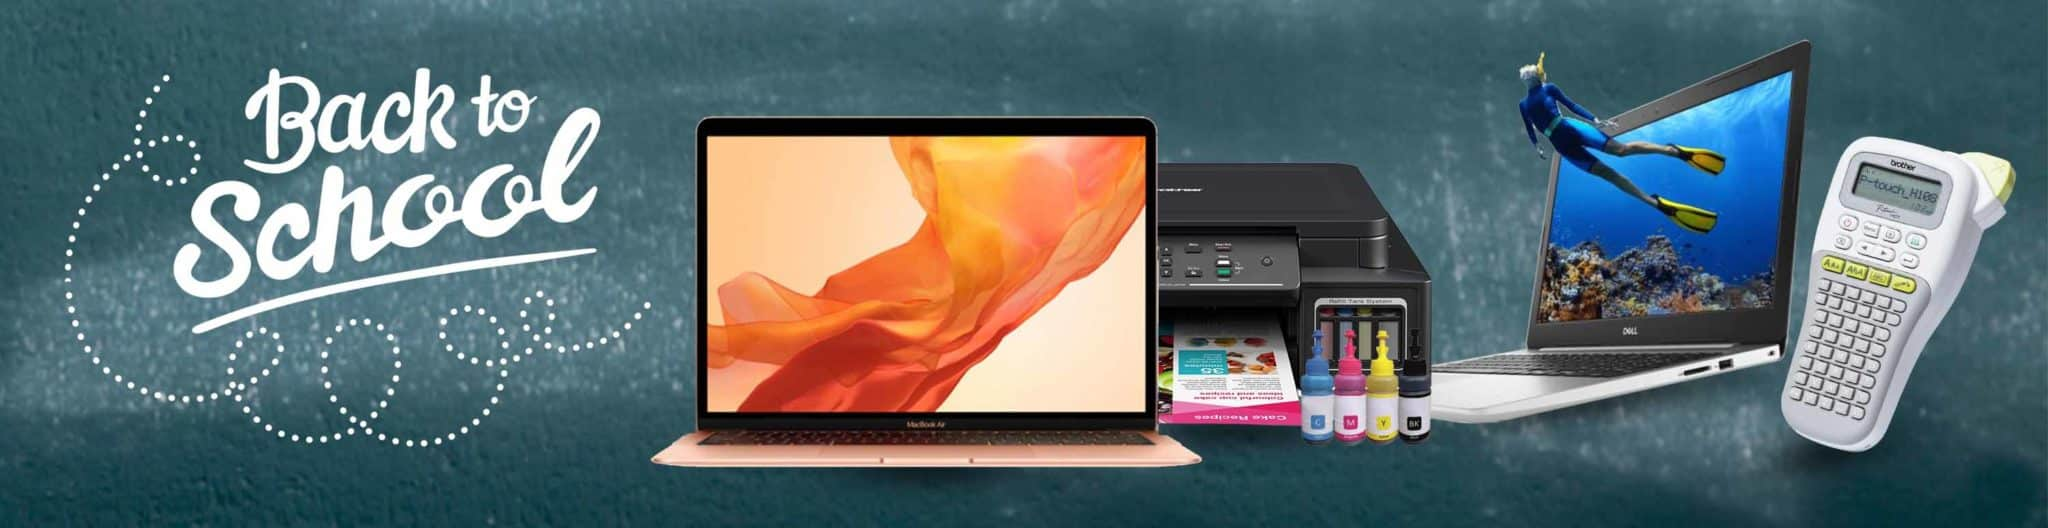 Save on Dell Laptops and Apple MacBook's with Intercomp Malta's Back To School offers